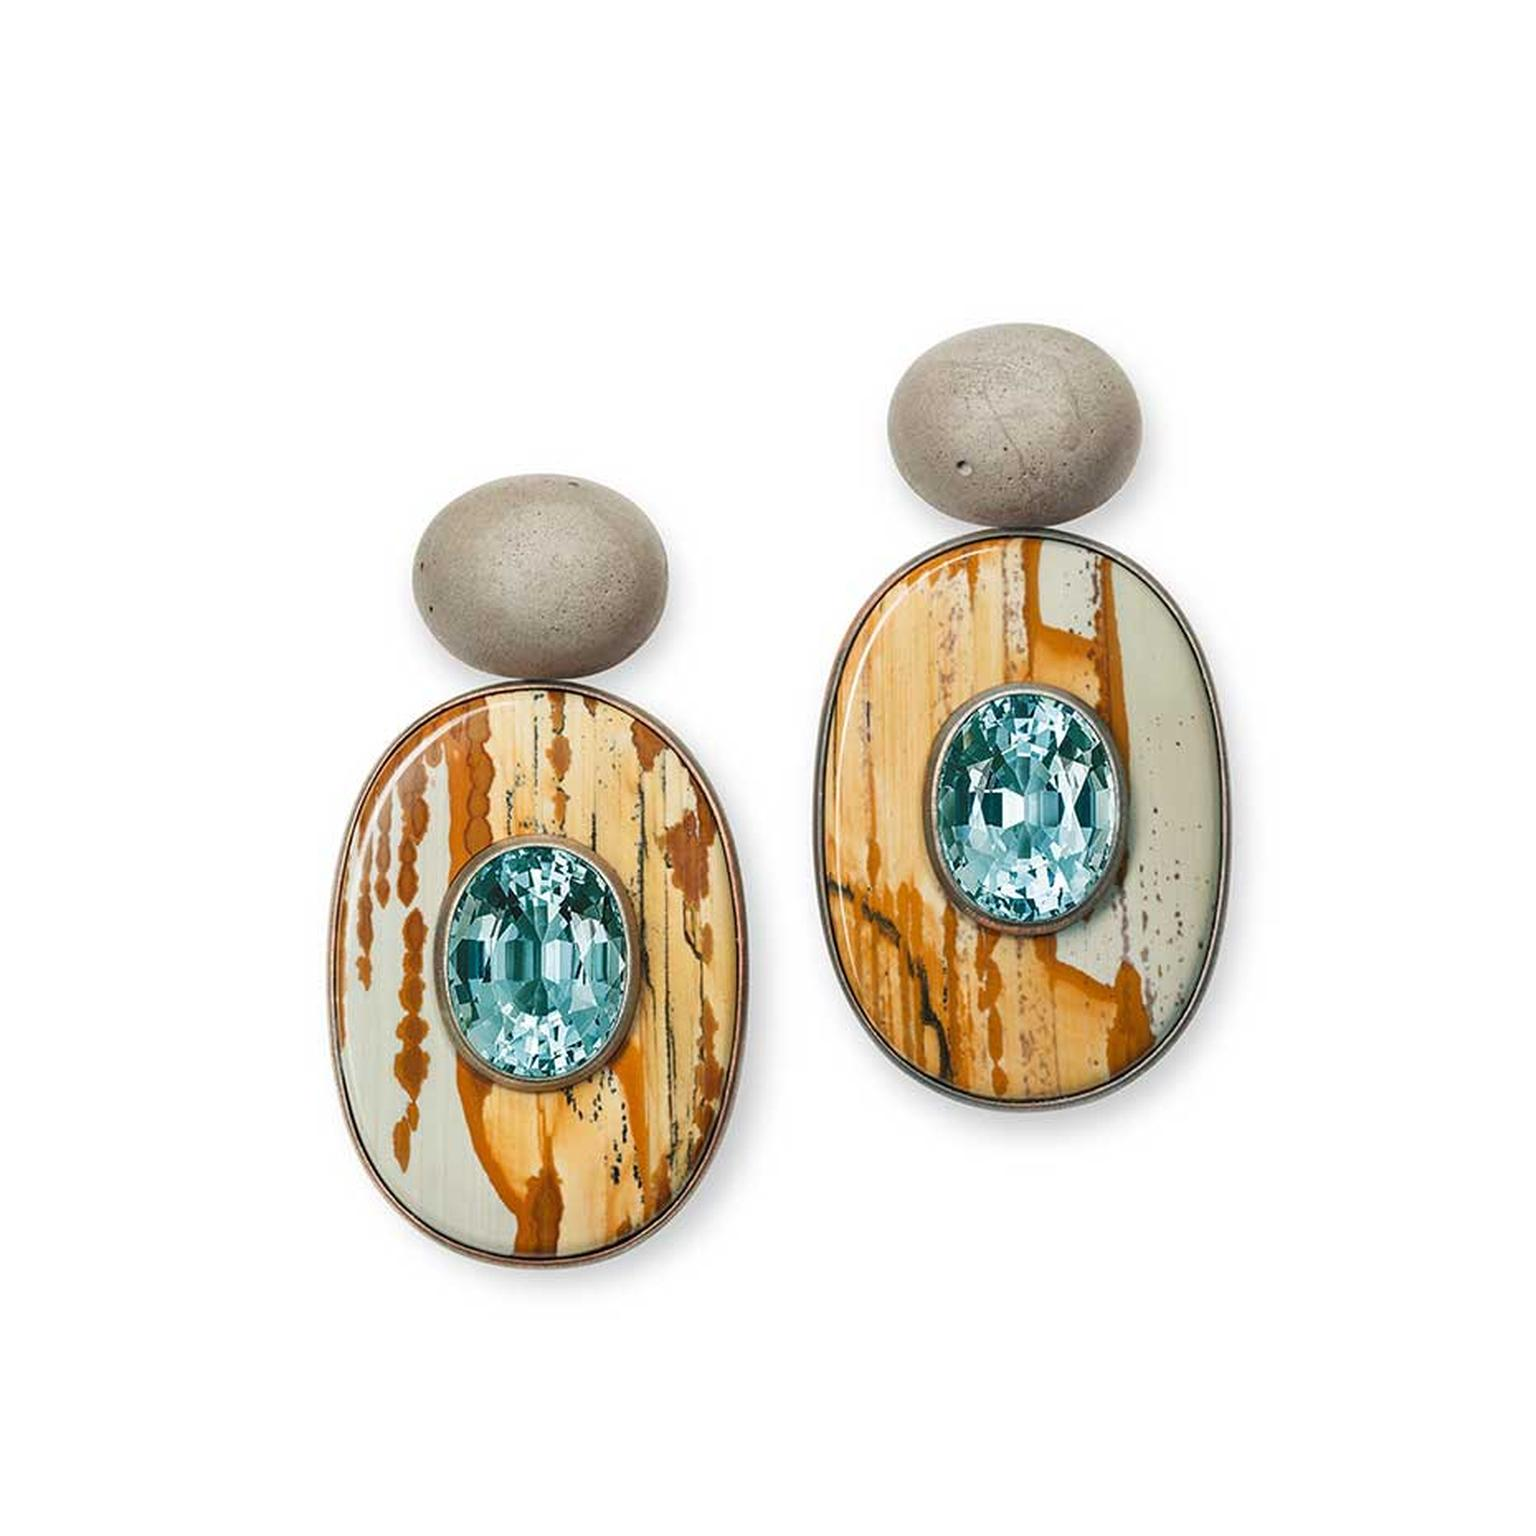 Hemmerle earrings featuring aquamarines set into slices of jasper with concrete, copper and gold